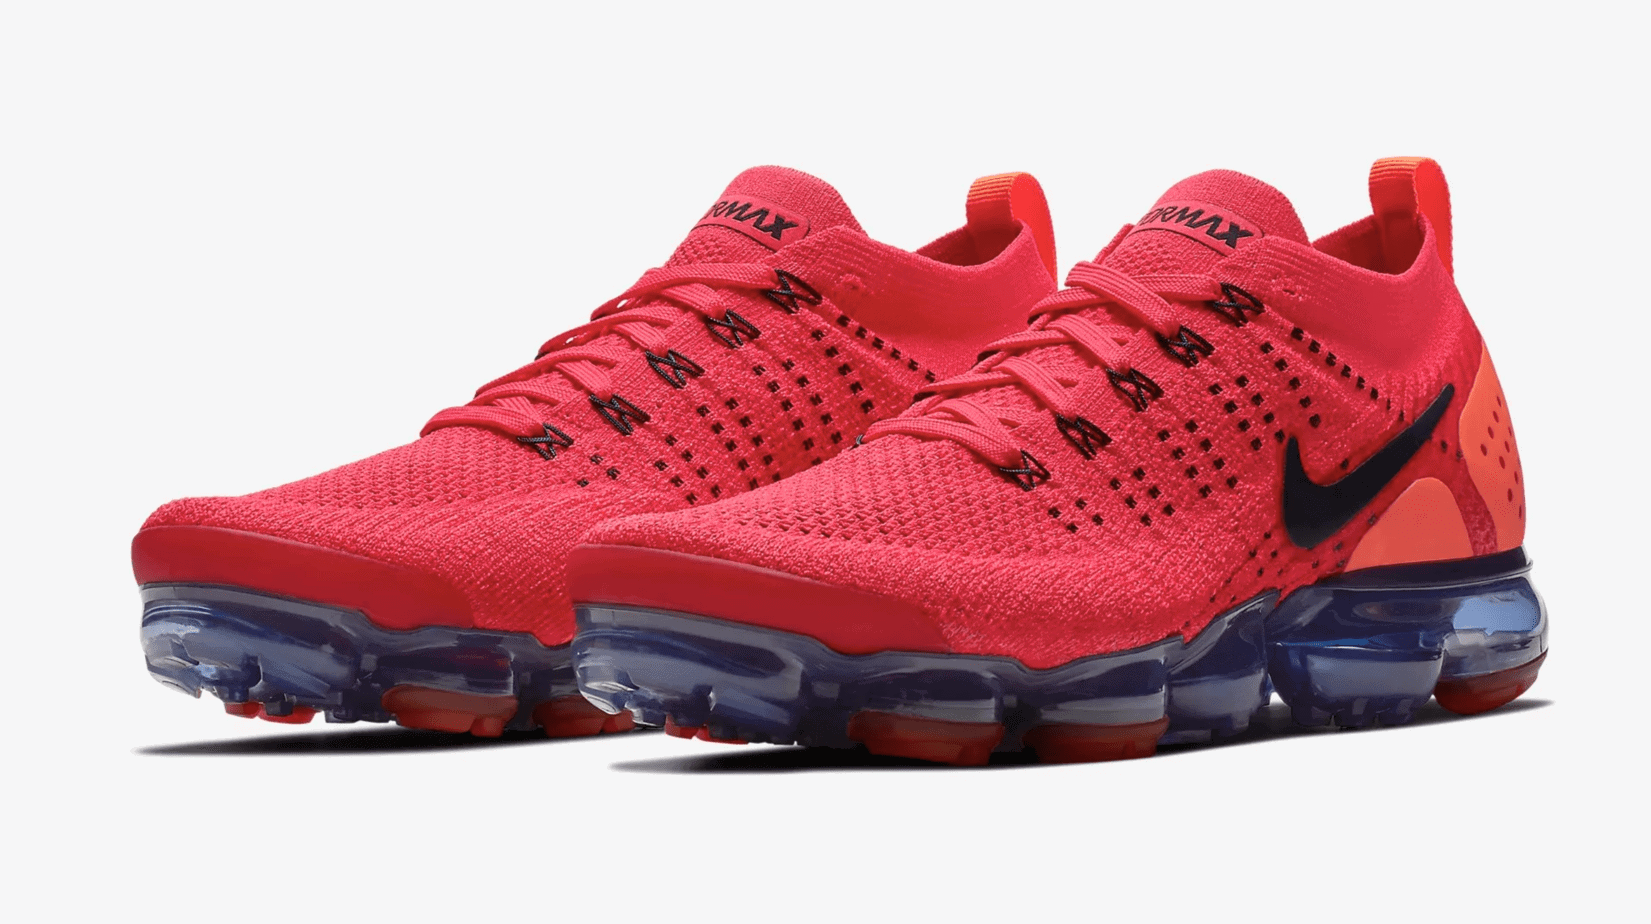 "8dec4887a9dee The Nike Air Vapormax Flyknit 2.0 is adding more Spring and Summer-ready  colorways to its already burgeoning arsenal. Check out the bold new ""Red  Orbit"" ..."